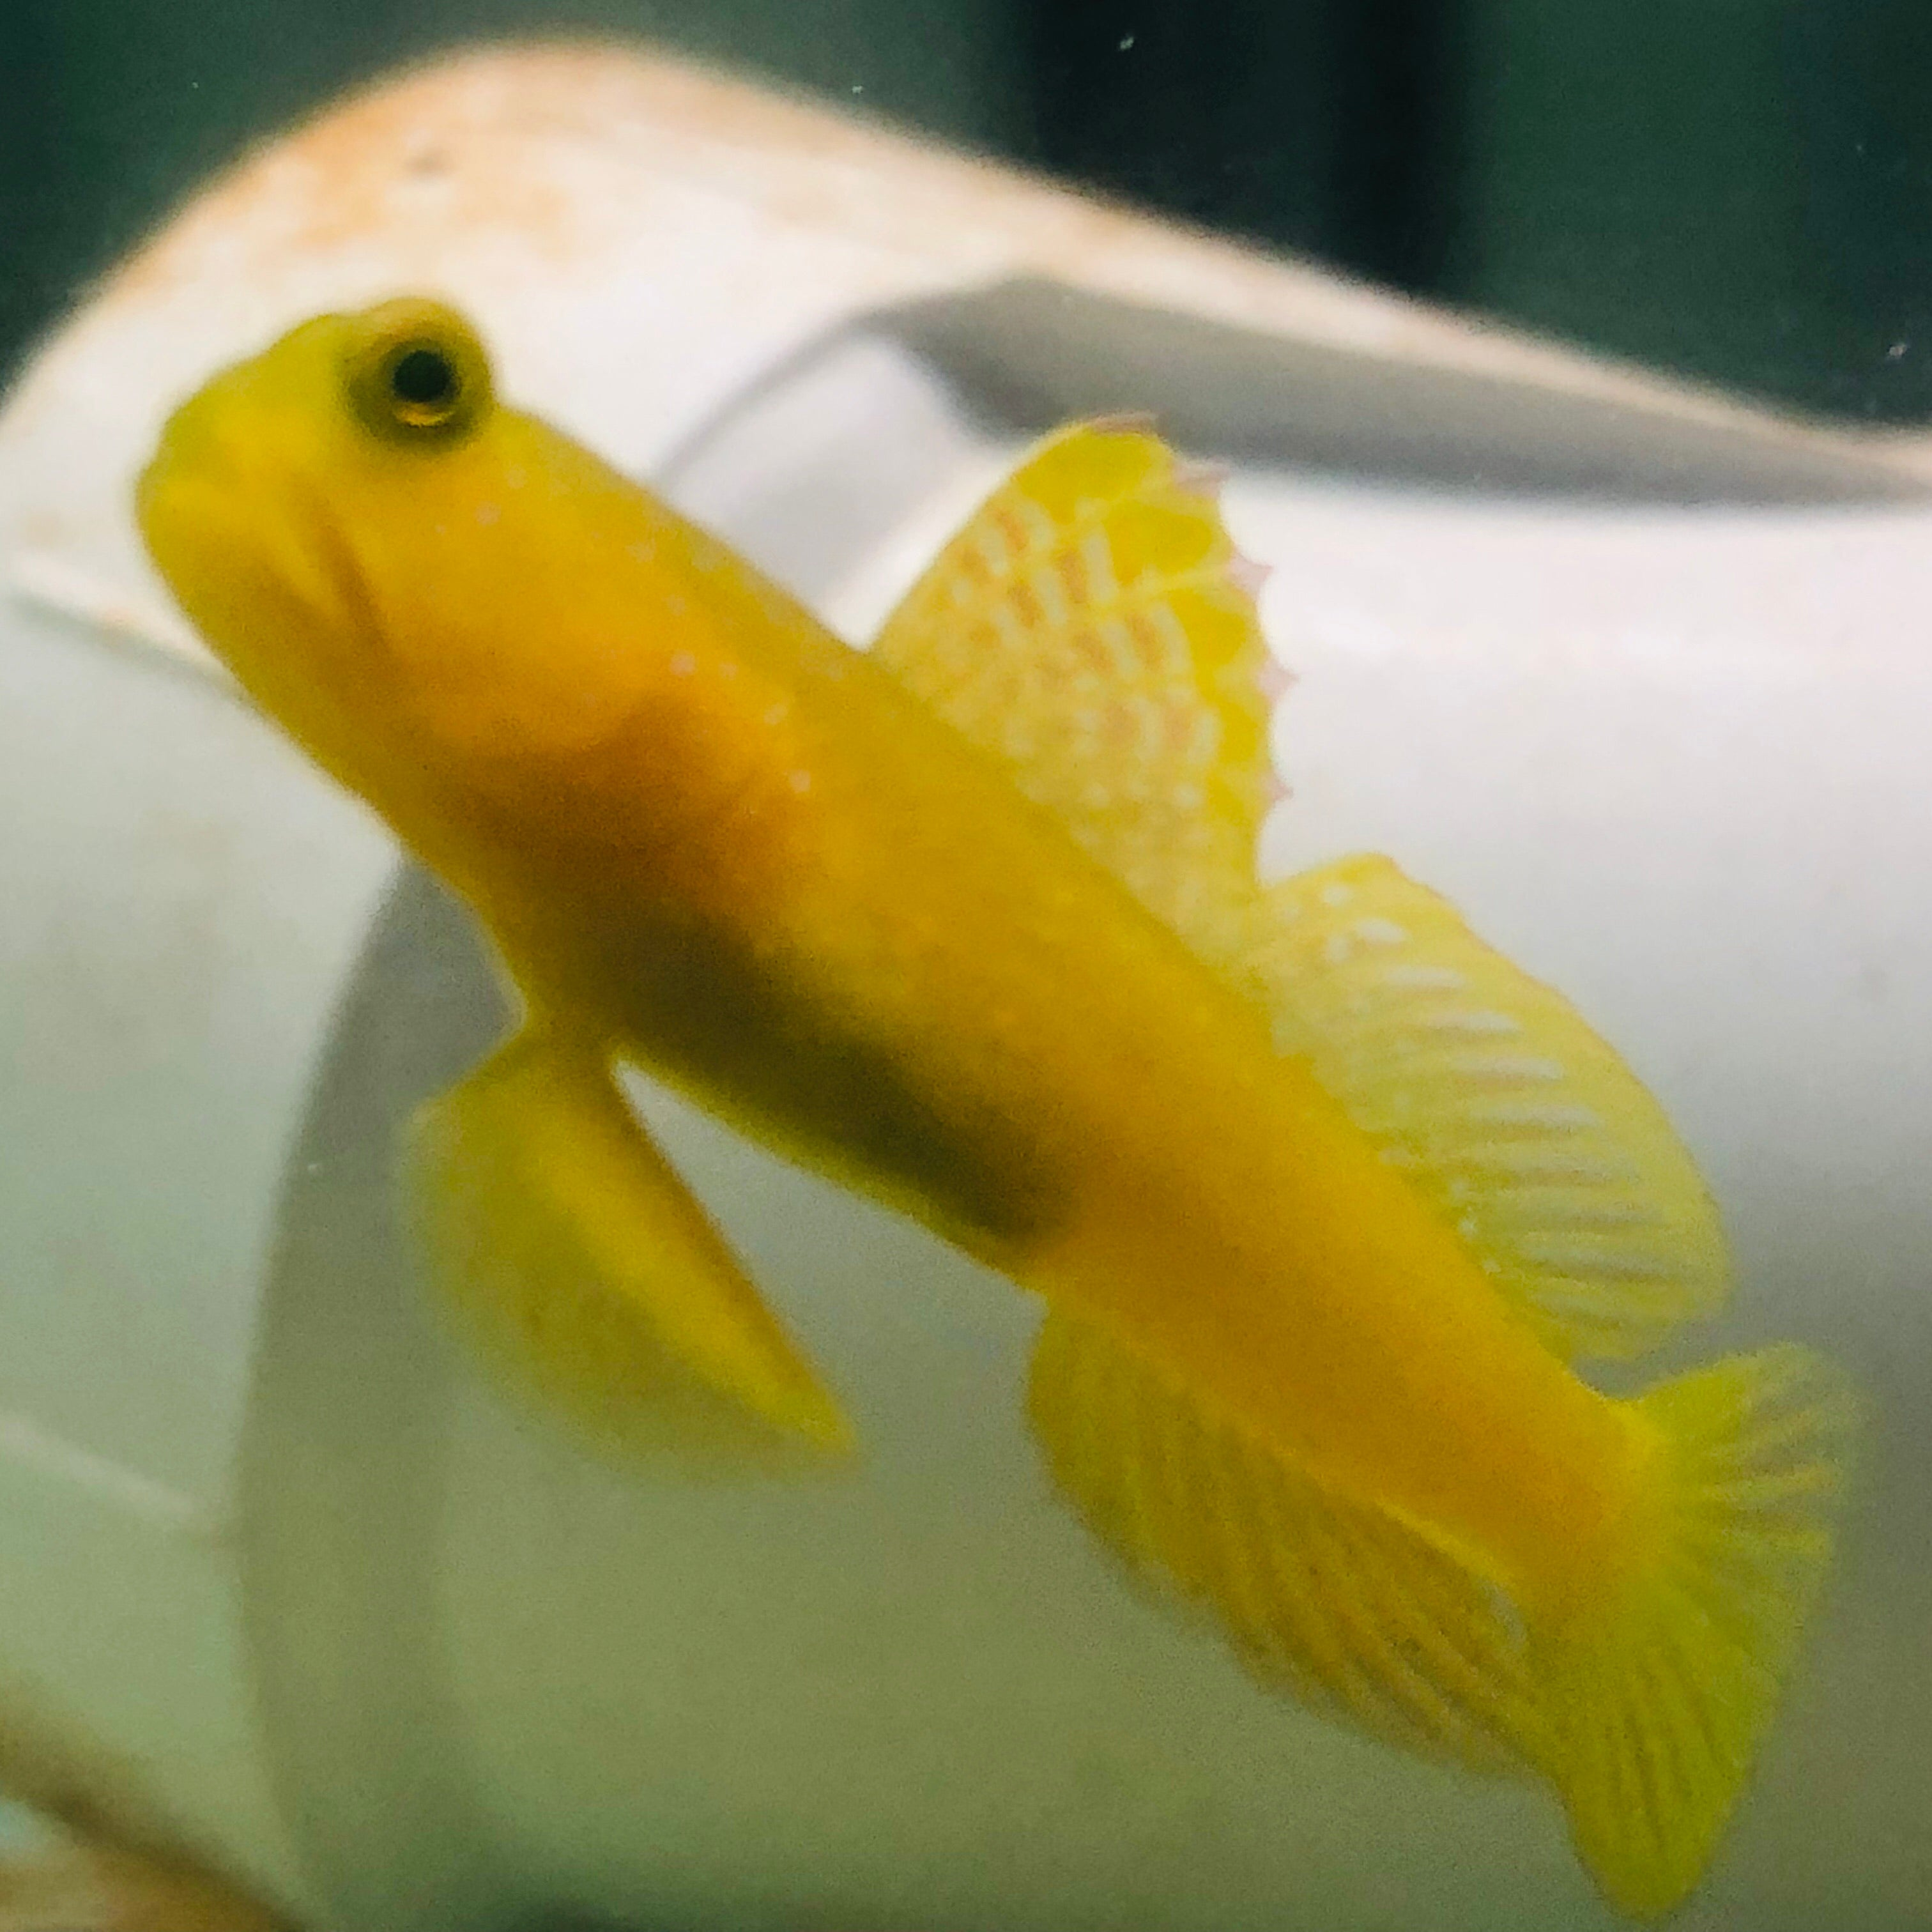 Aquarium Conditioned-Yellow Watchman Goby